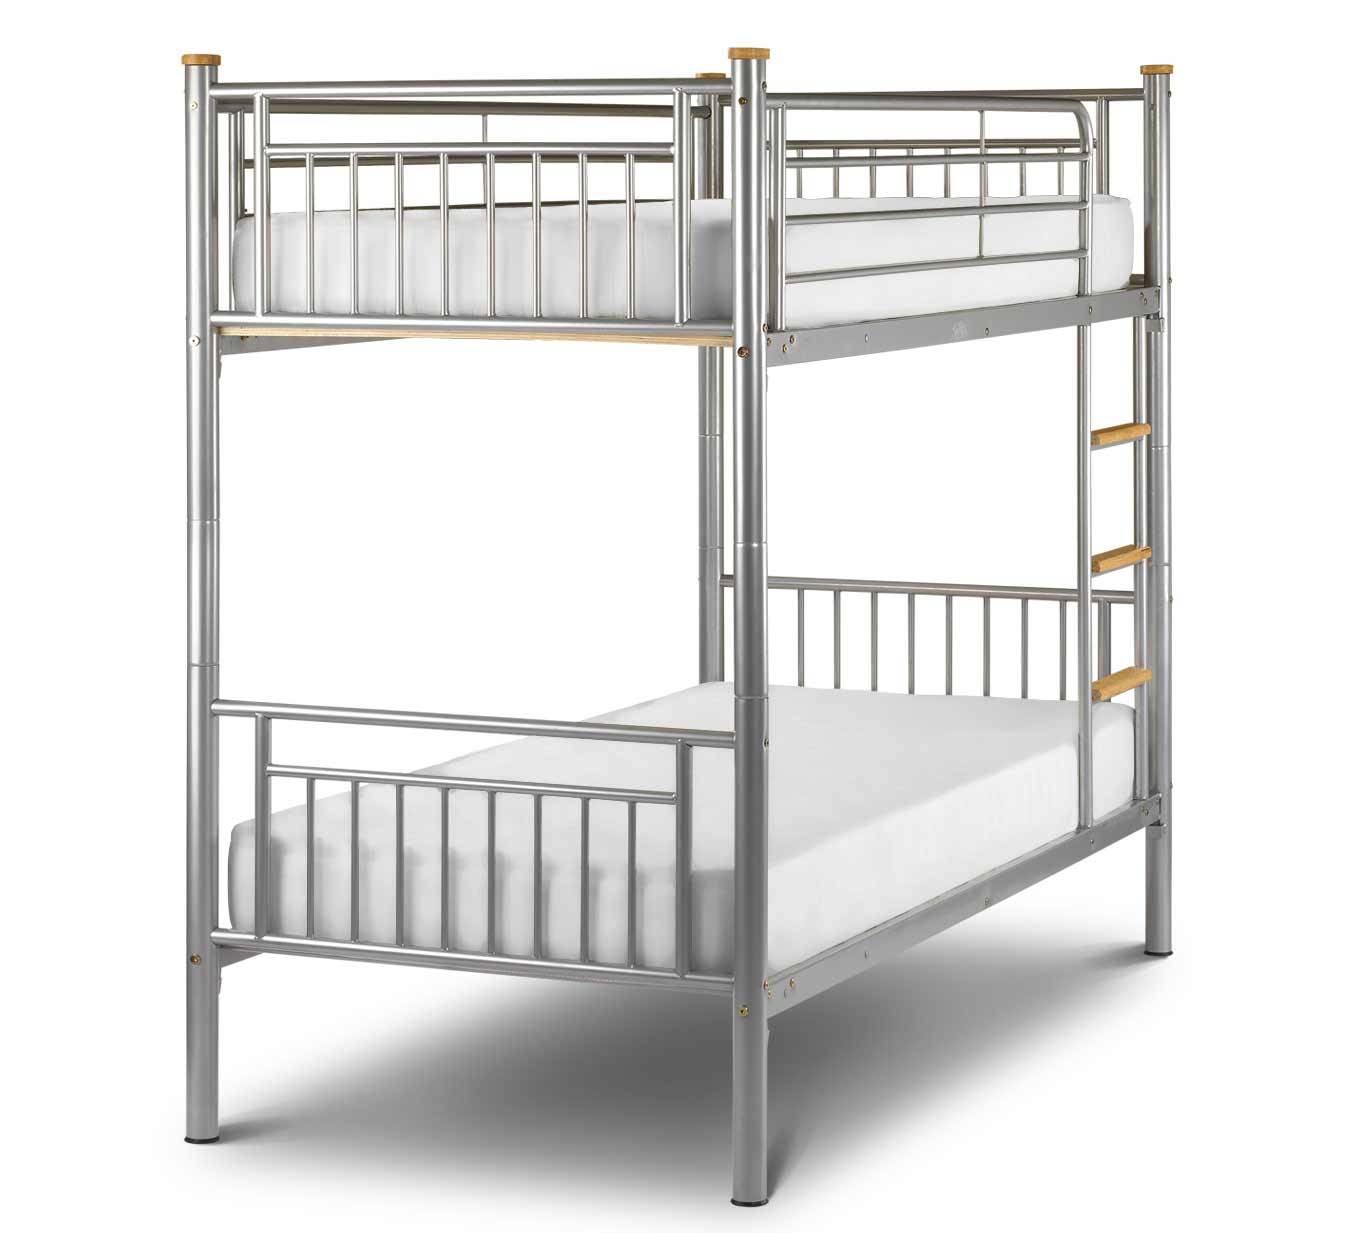 Atlas Aluminum Cheap Bunk Beds from Julian Bowen